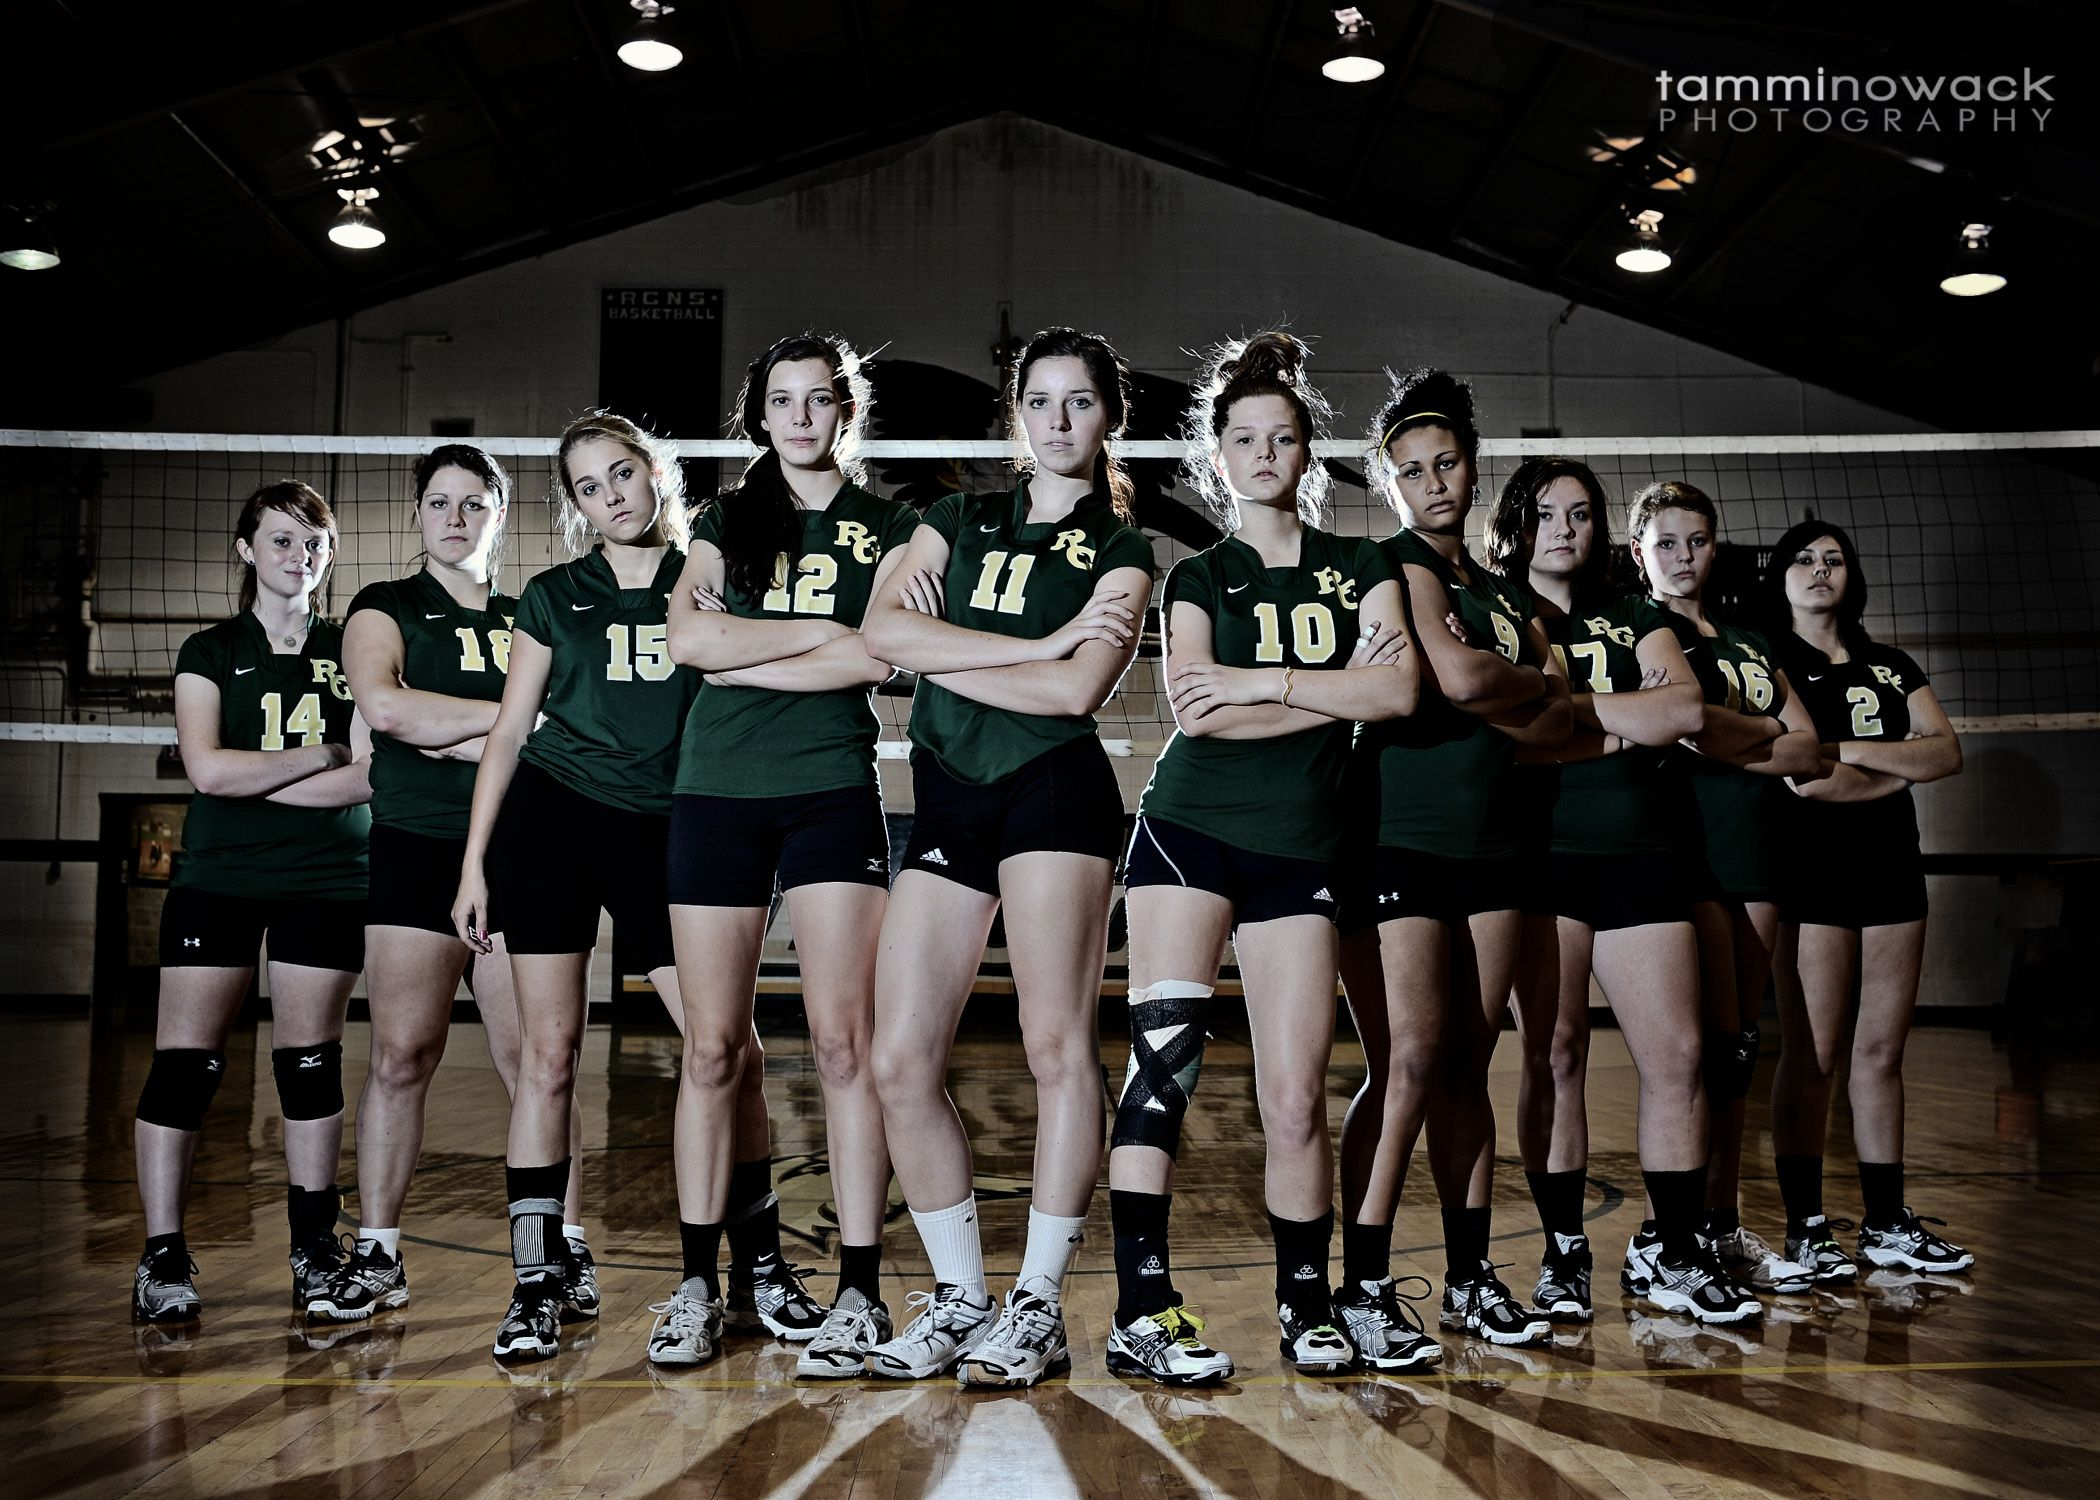 Pin By Alexis Bachmeier On Volleyball Sports Team Photography Volleyball Team Photos Volleyball Team Pictures